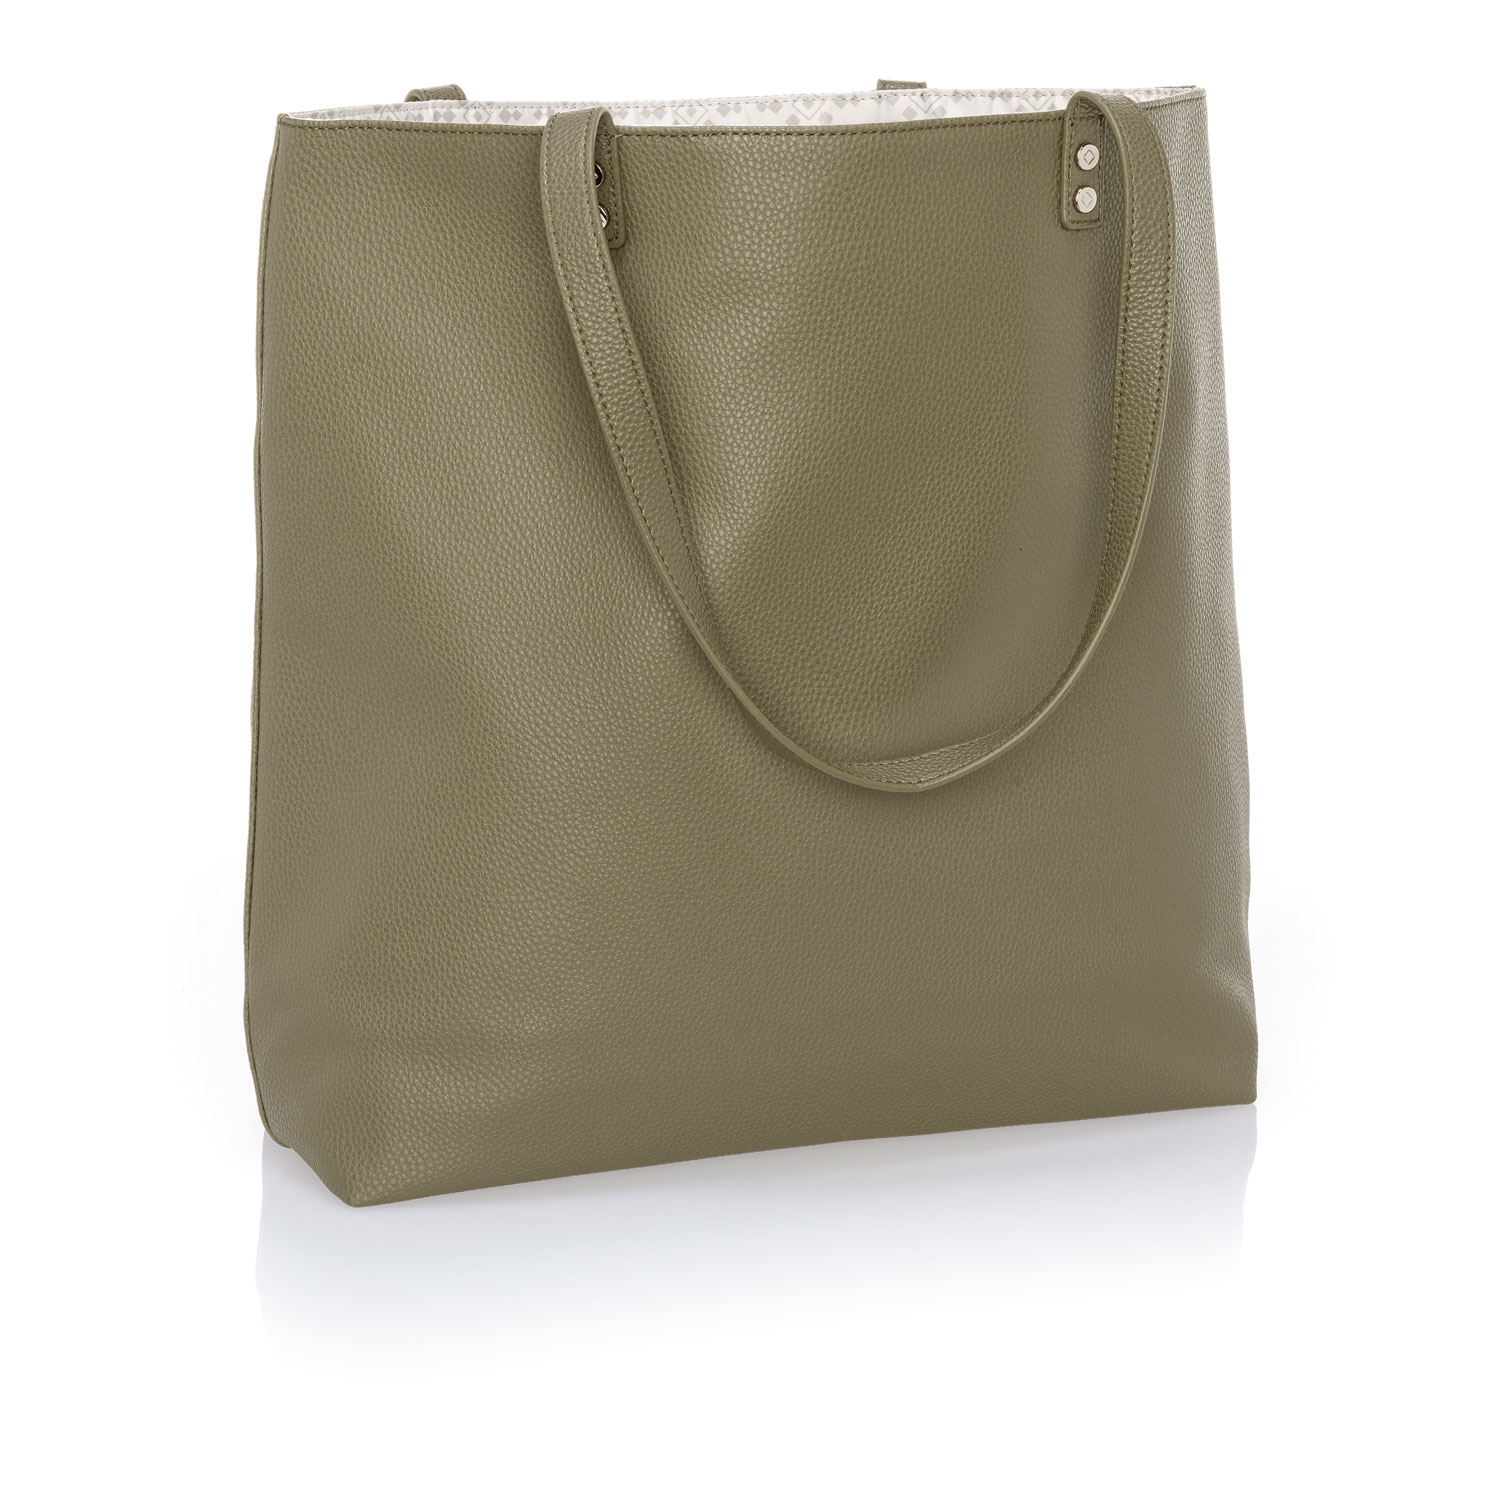 Ooh-la-la Olive Pebble - Around Town Tote - Thirty-One Gifts 8e0470833586